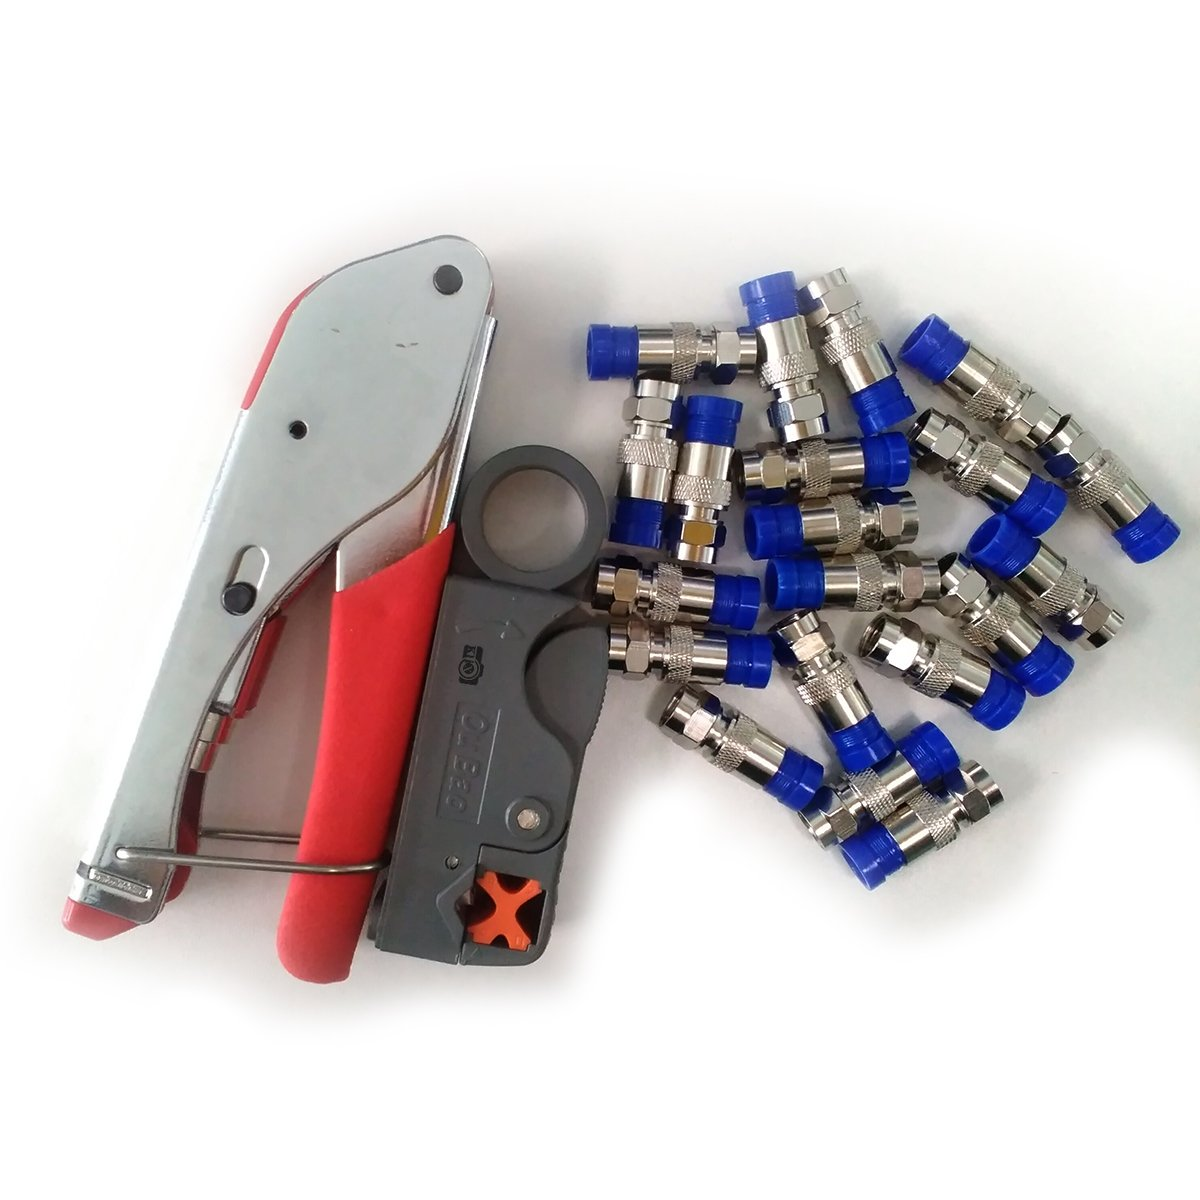 Klix Compression for Connector Tool Cable Stripper RG6 Fitting -Red by Klix (Image #4)